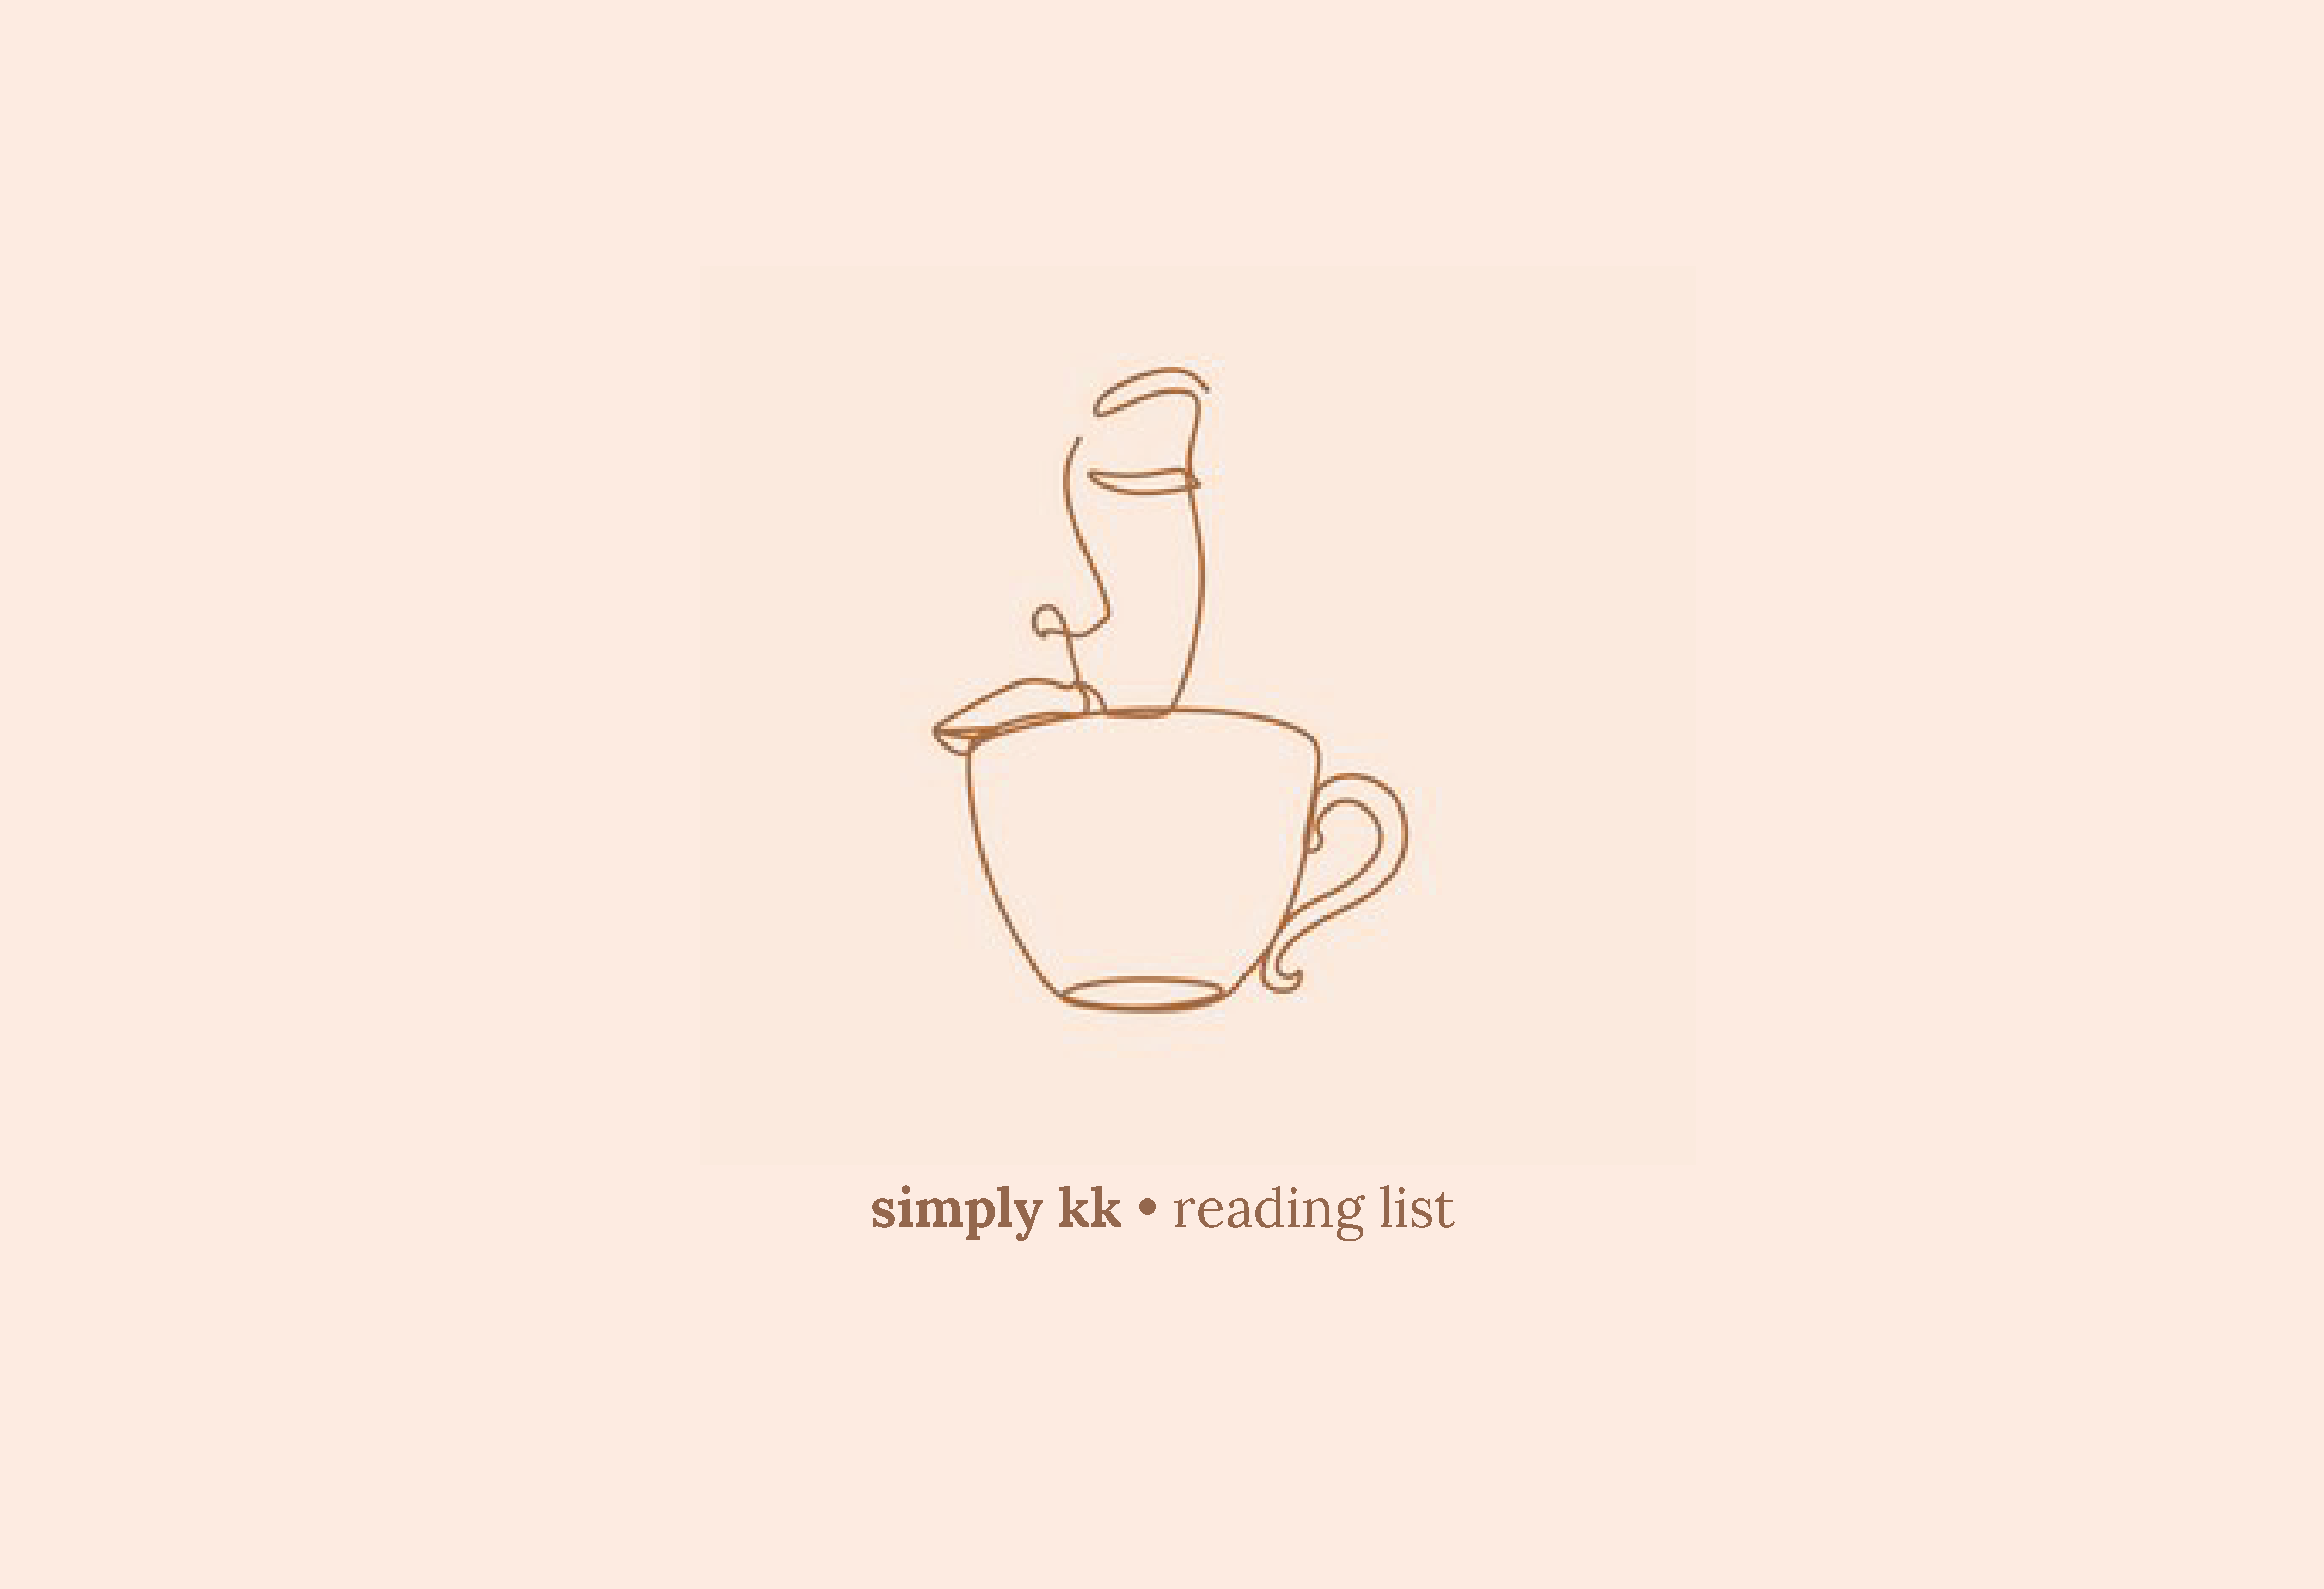 simply kk reading list